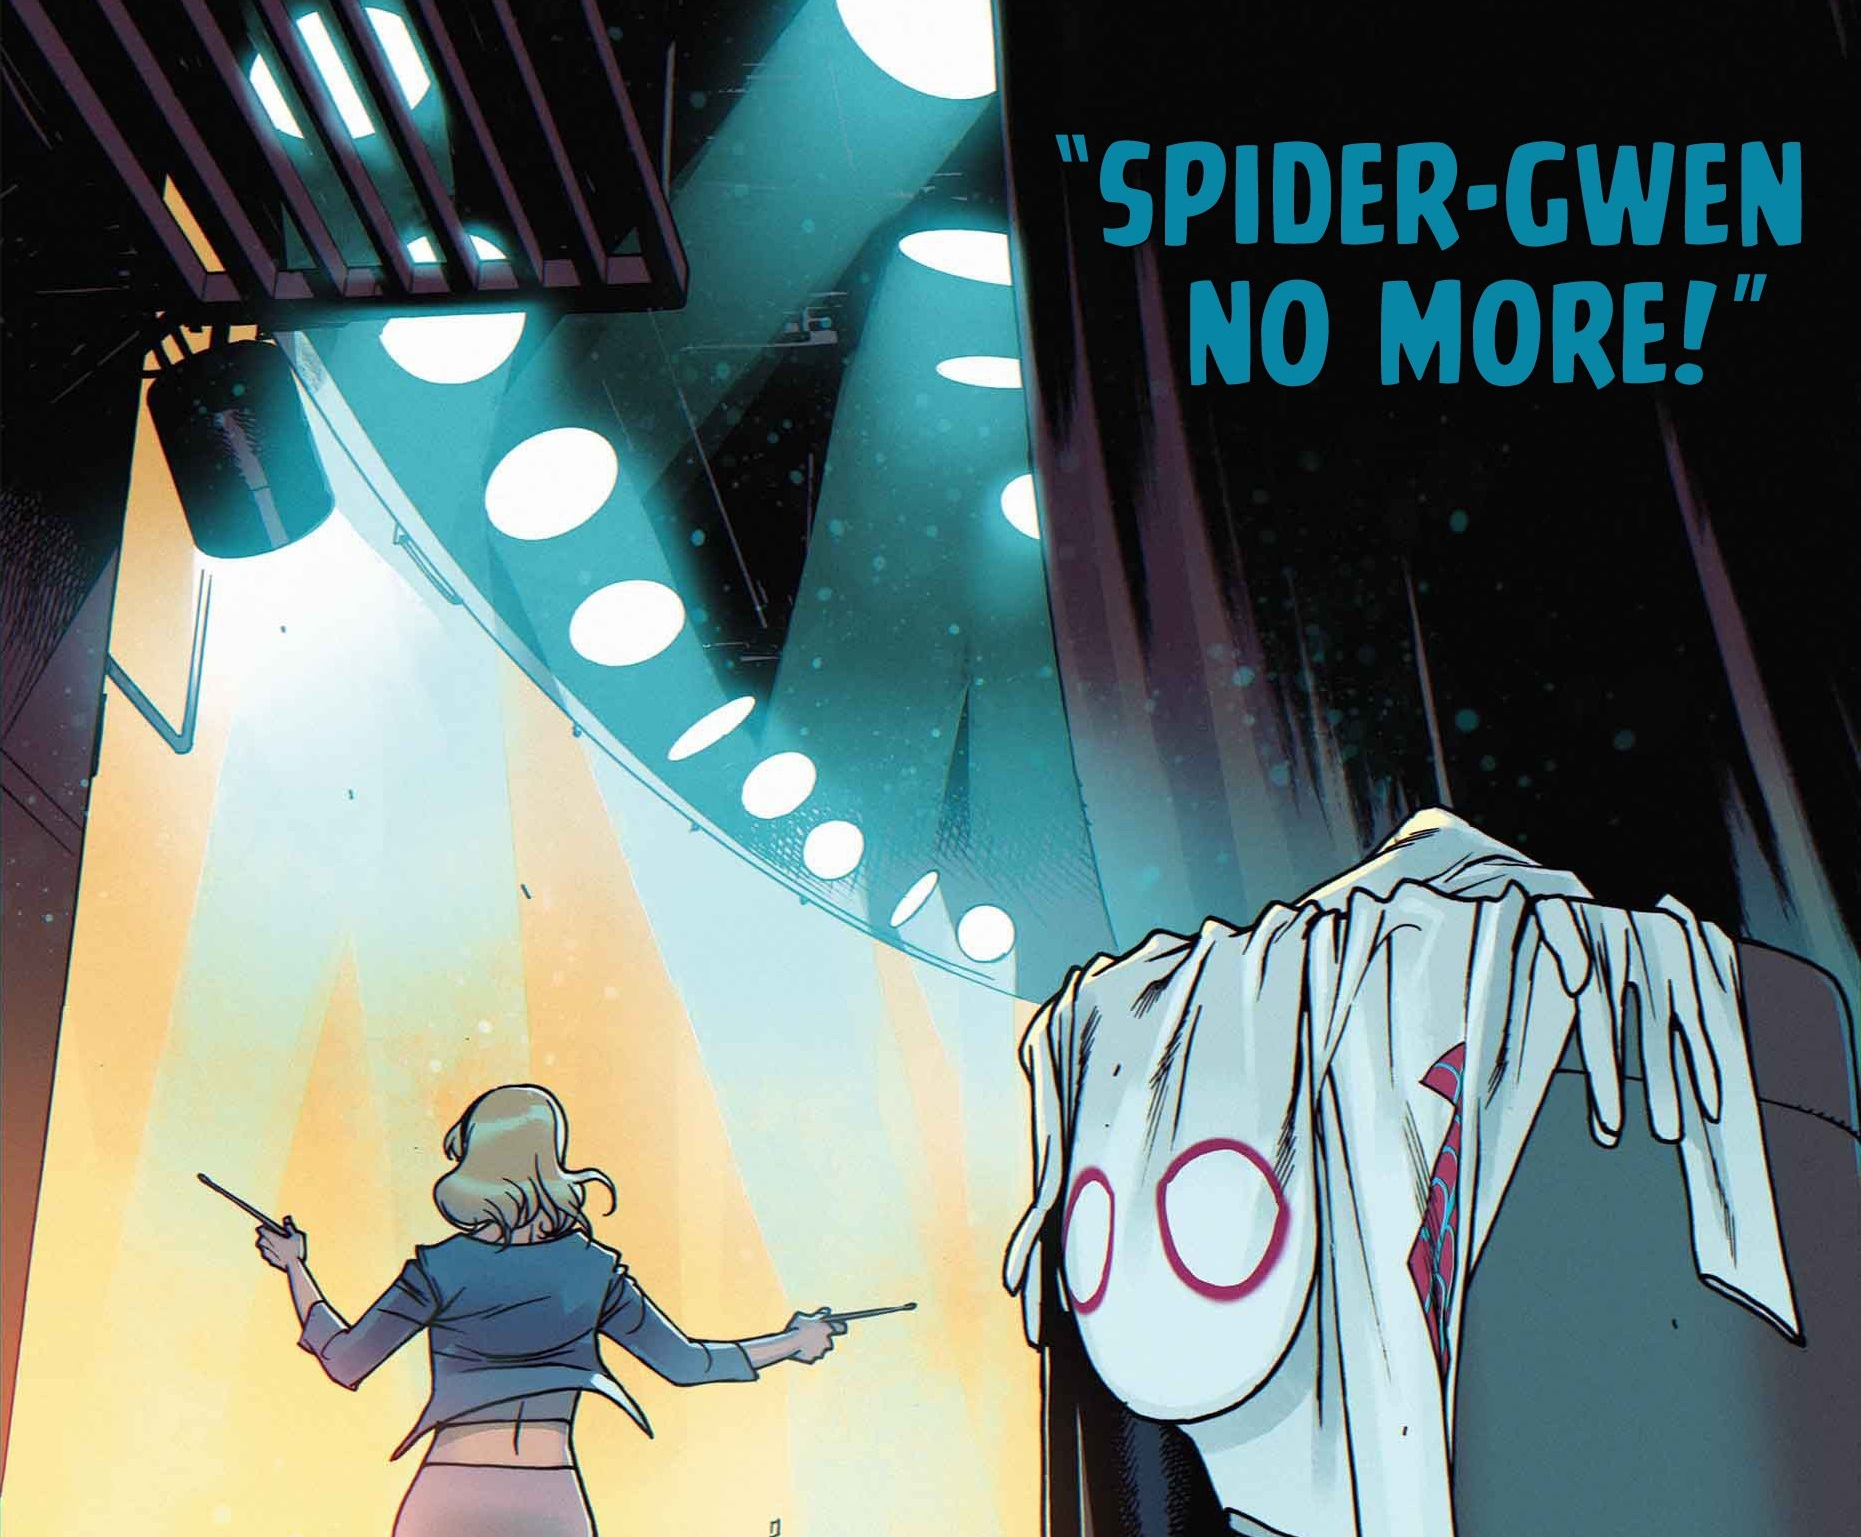 Seanan McGuire talks Spider-Gwen's name change, evil Peter Parker, and representation in the Spider-Verse